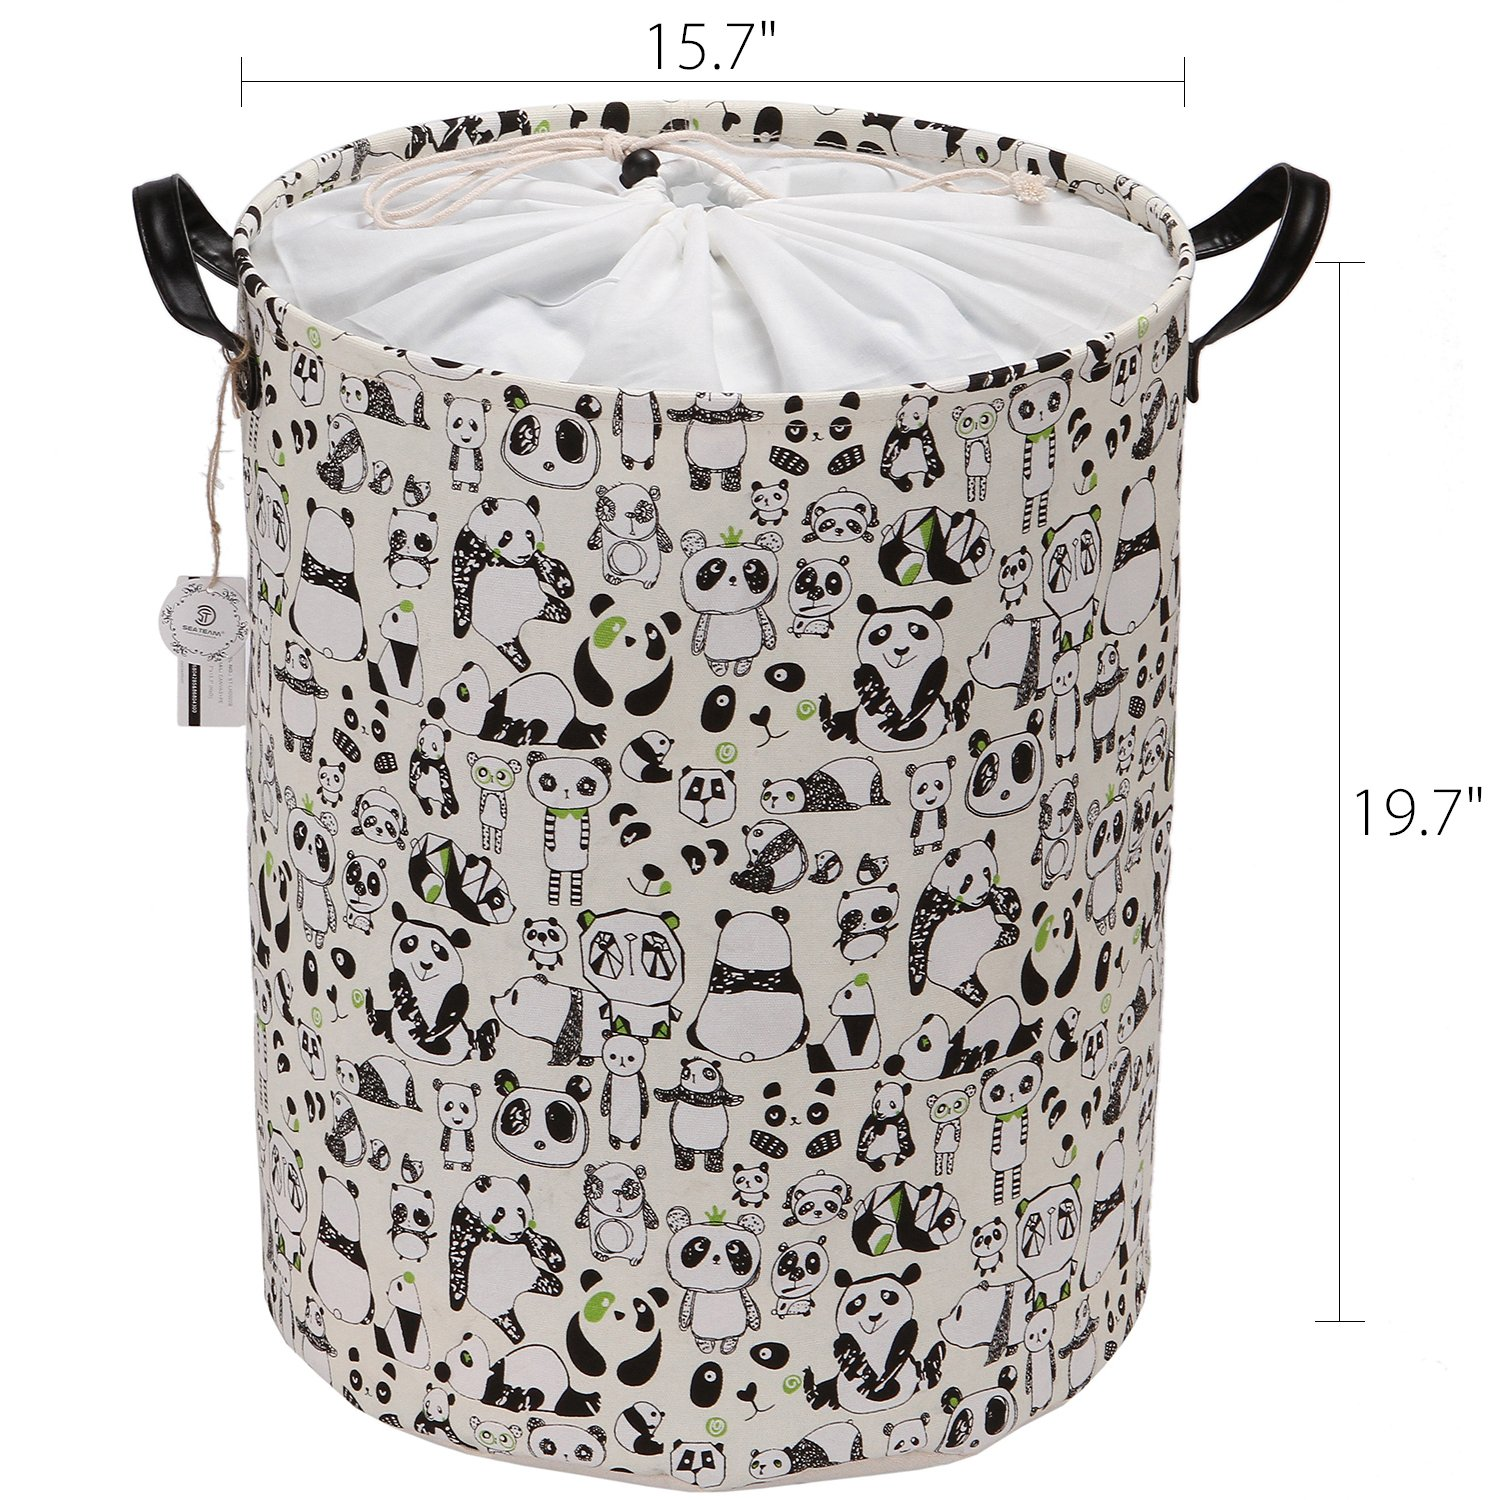 Sea Team 19.7'' Large Size Stylish Panda Design Canvas & Linen Fabric Laundry Hamper Storage Basket with Premium PU Leather Handles for Kid's Room, Drawstring Cover with Waterproof Coating by Sea Team (Image #2)